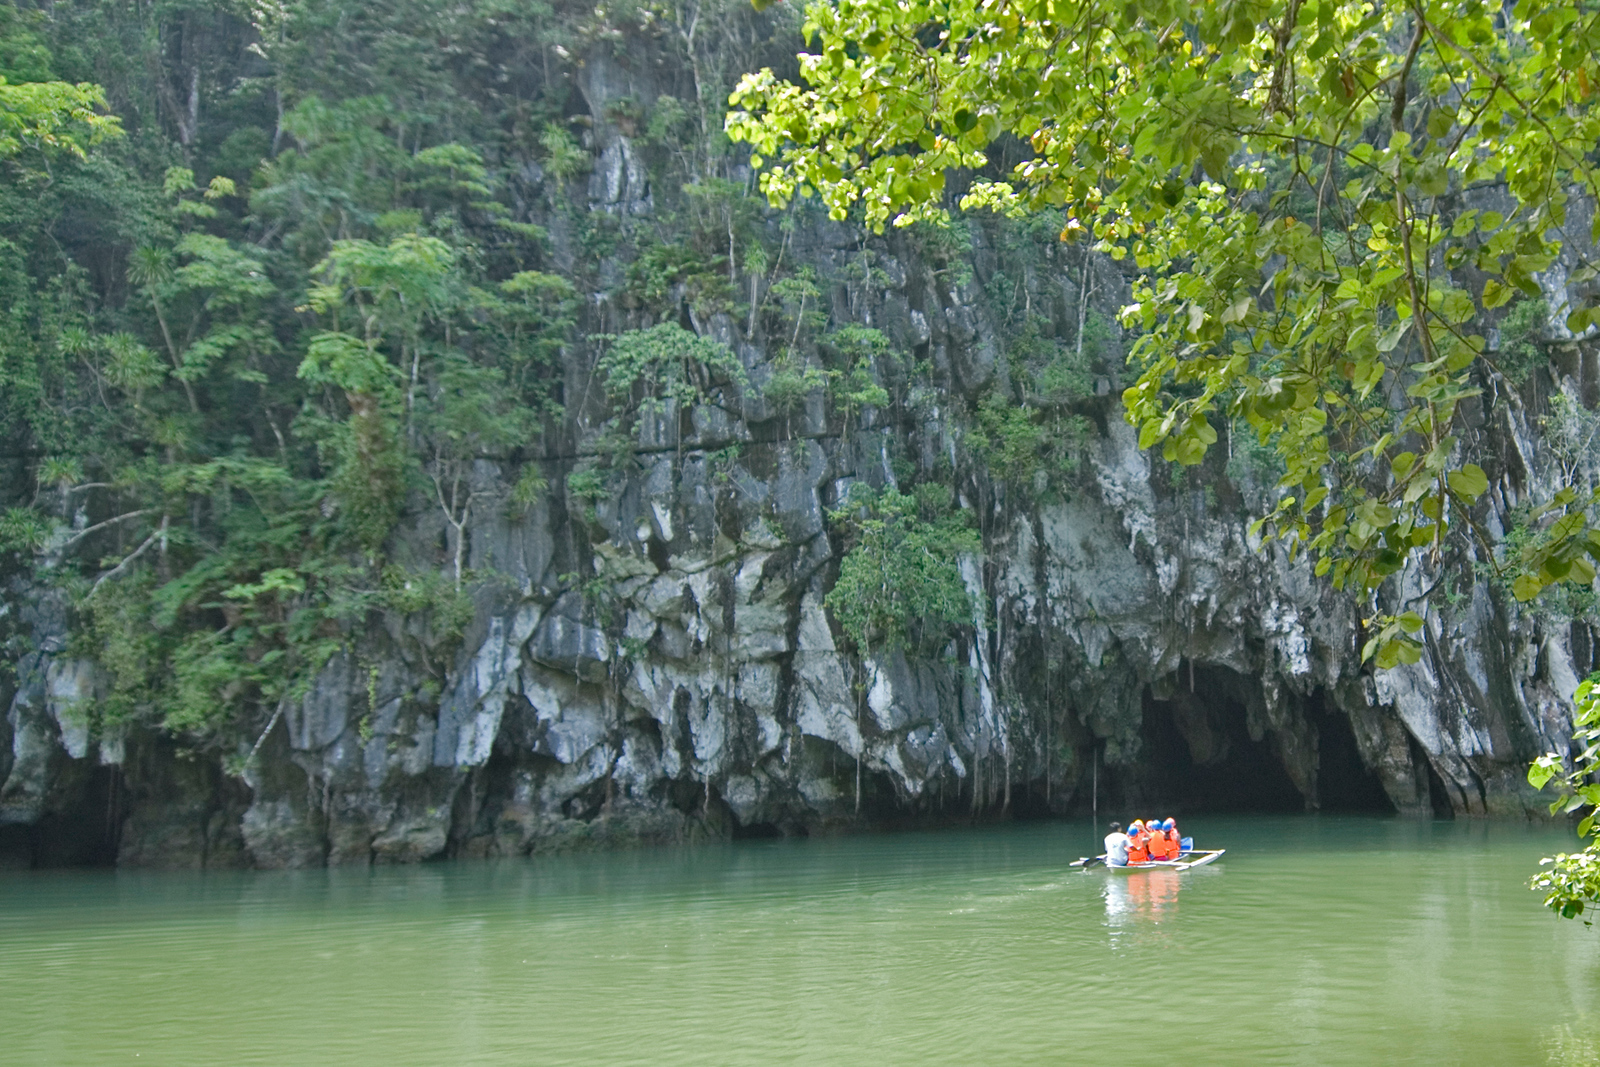 Puerto-Princesa Subterranean River National Park World Heritage Site, Philippines